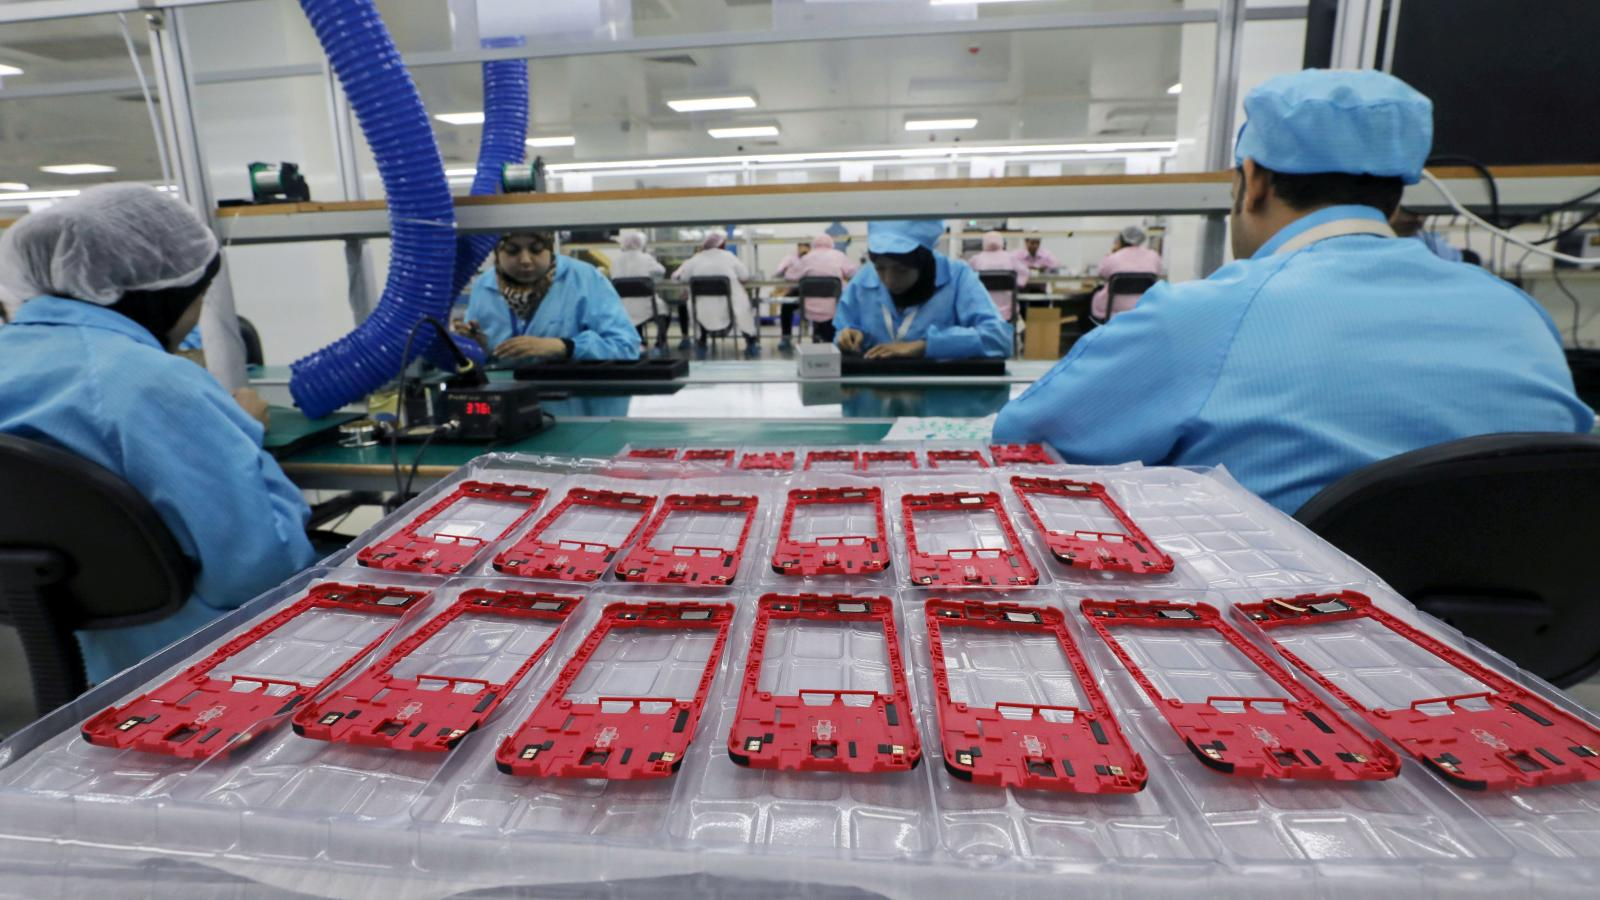 Africa Telcos Nations Launch Phones For African Users Quartz Mobile Phone Printed Circuit Board China Electronic And Digital